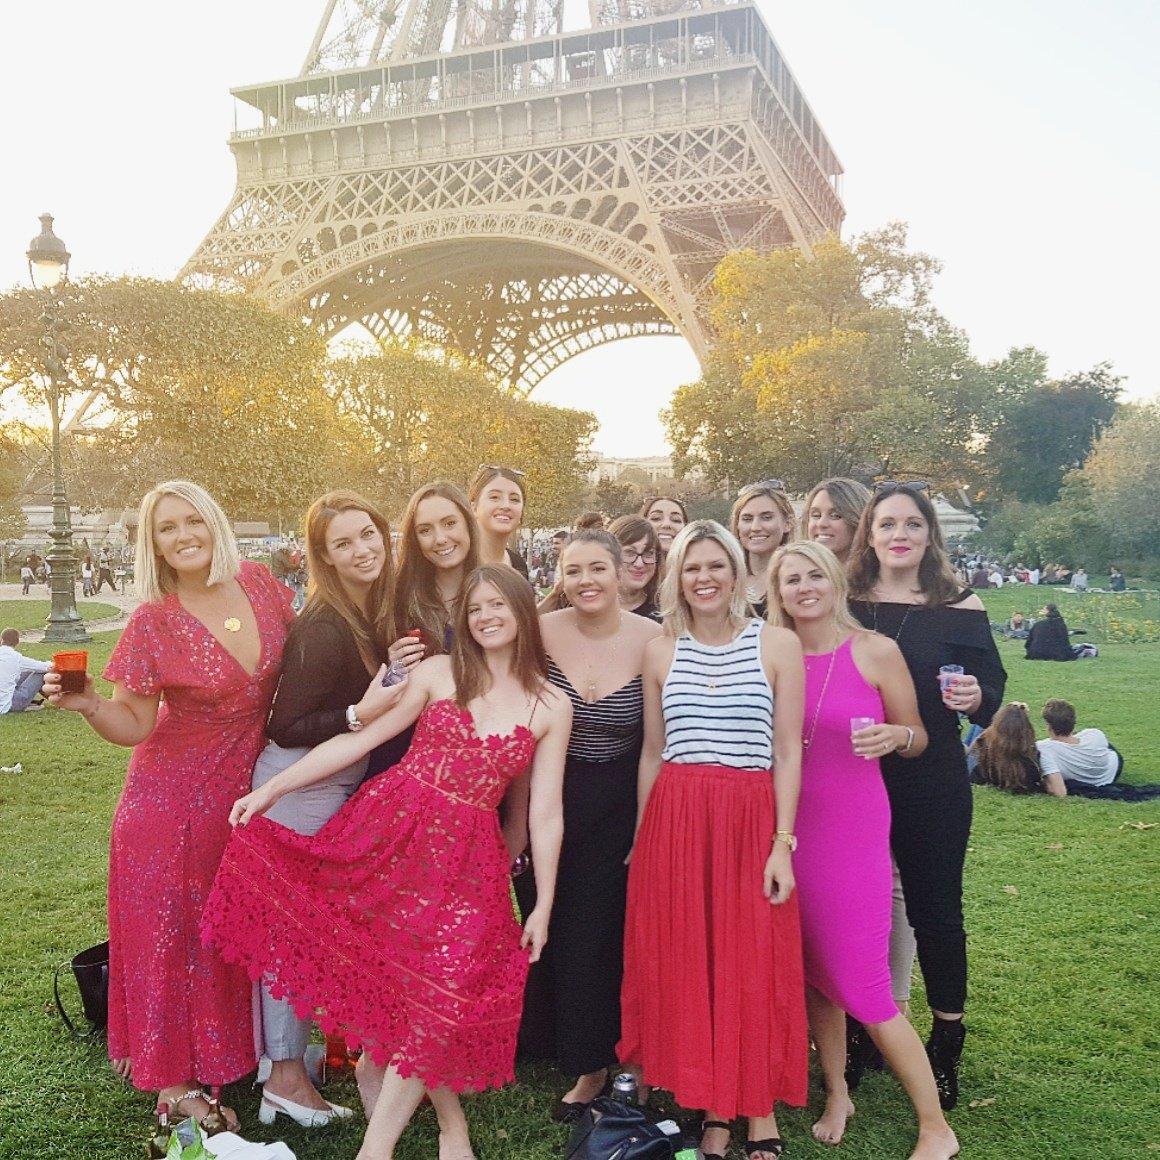 Group of girls in fabulous outfits at the eiffel tower at sunset